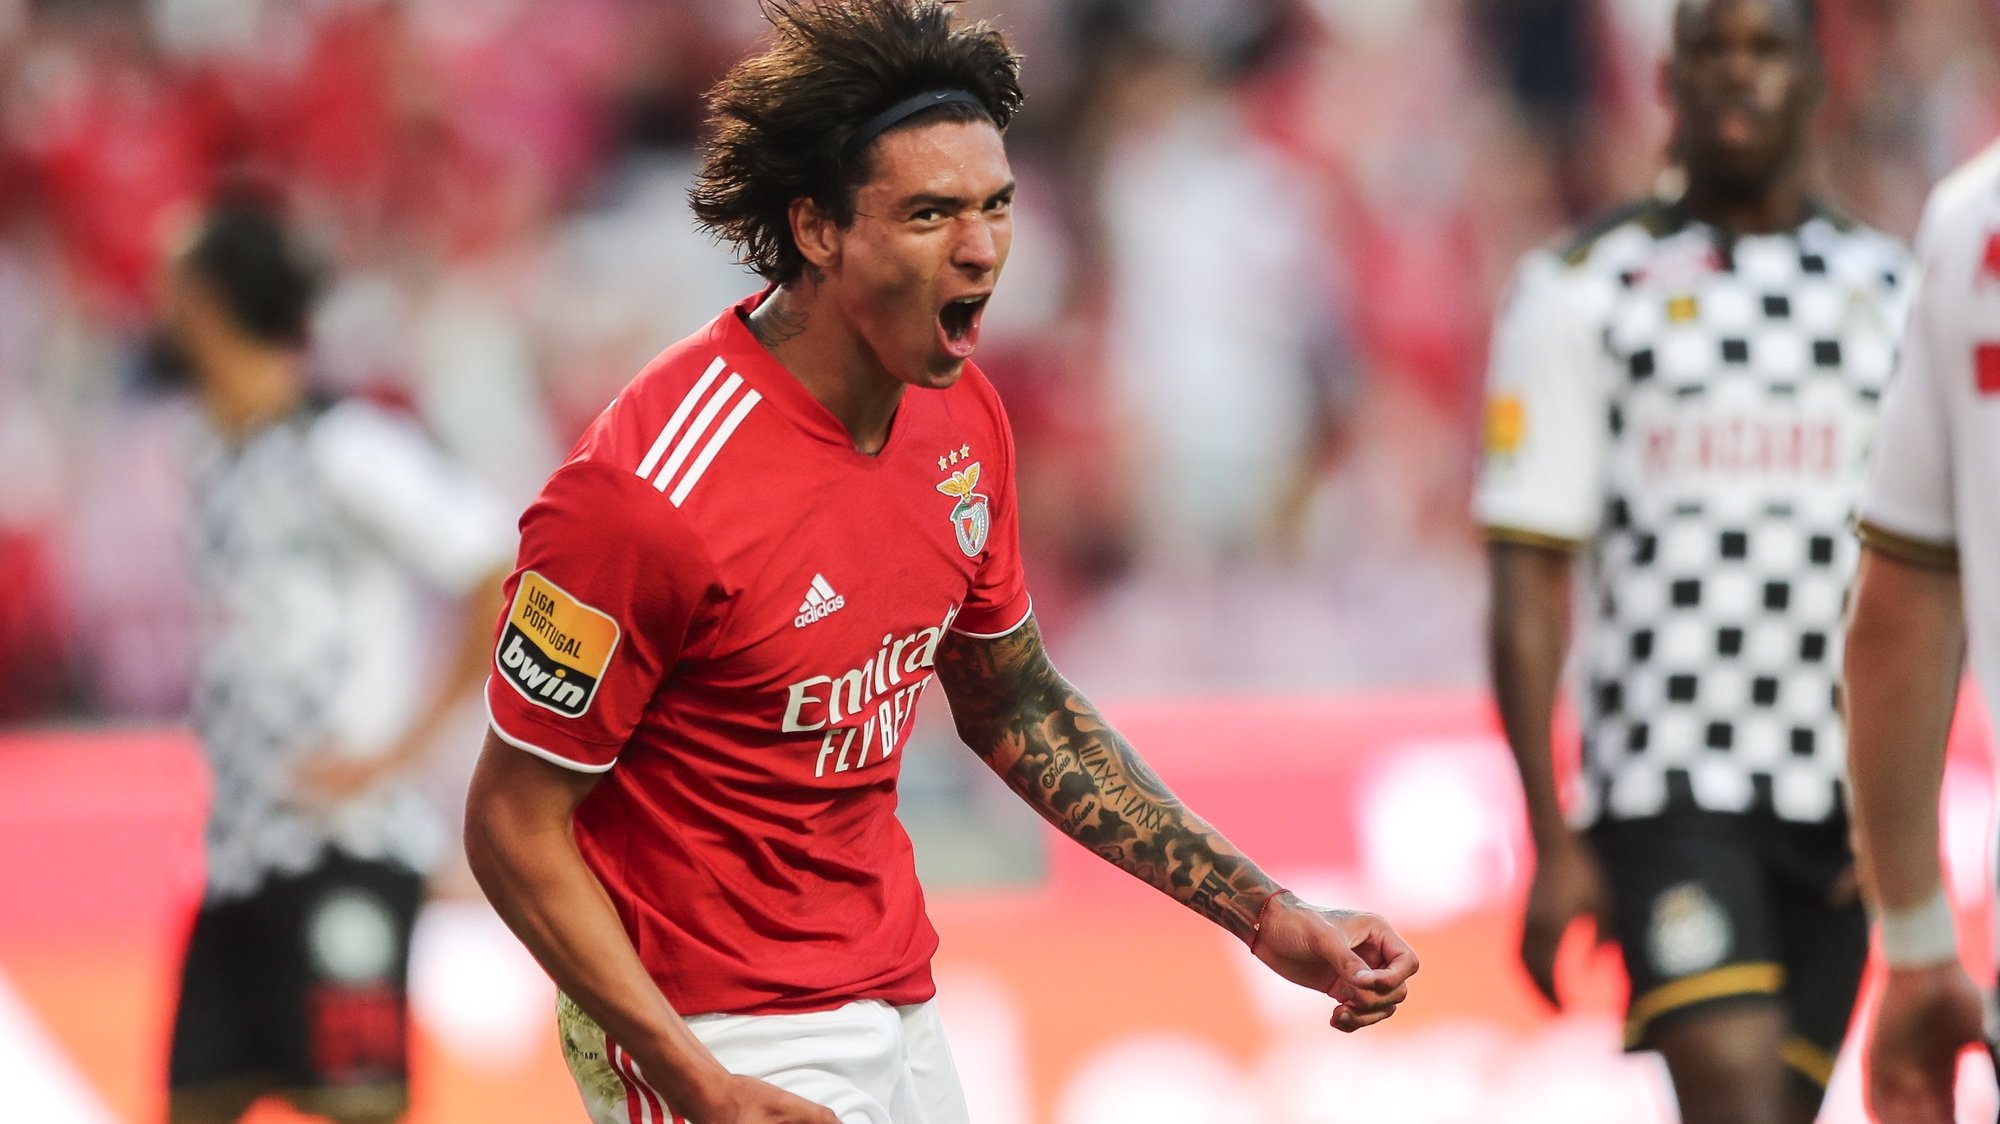 Benfica's Darwin Nunez celebrates after scoring a goal during the Portuguese First League soccer match between Benfica and Boavista at Luz Stadium in Lisbon, Portugal, 20 September 2021. MIGUEL A. LOPES/LUSA